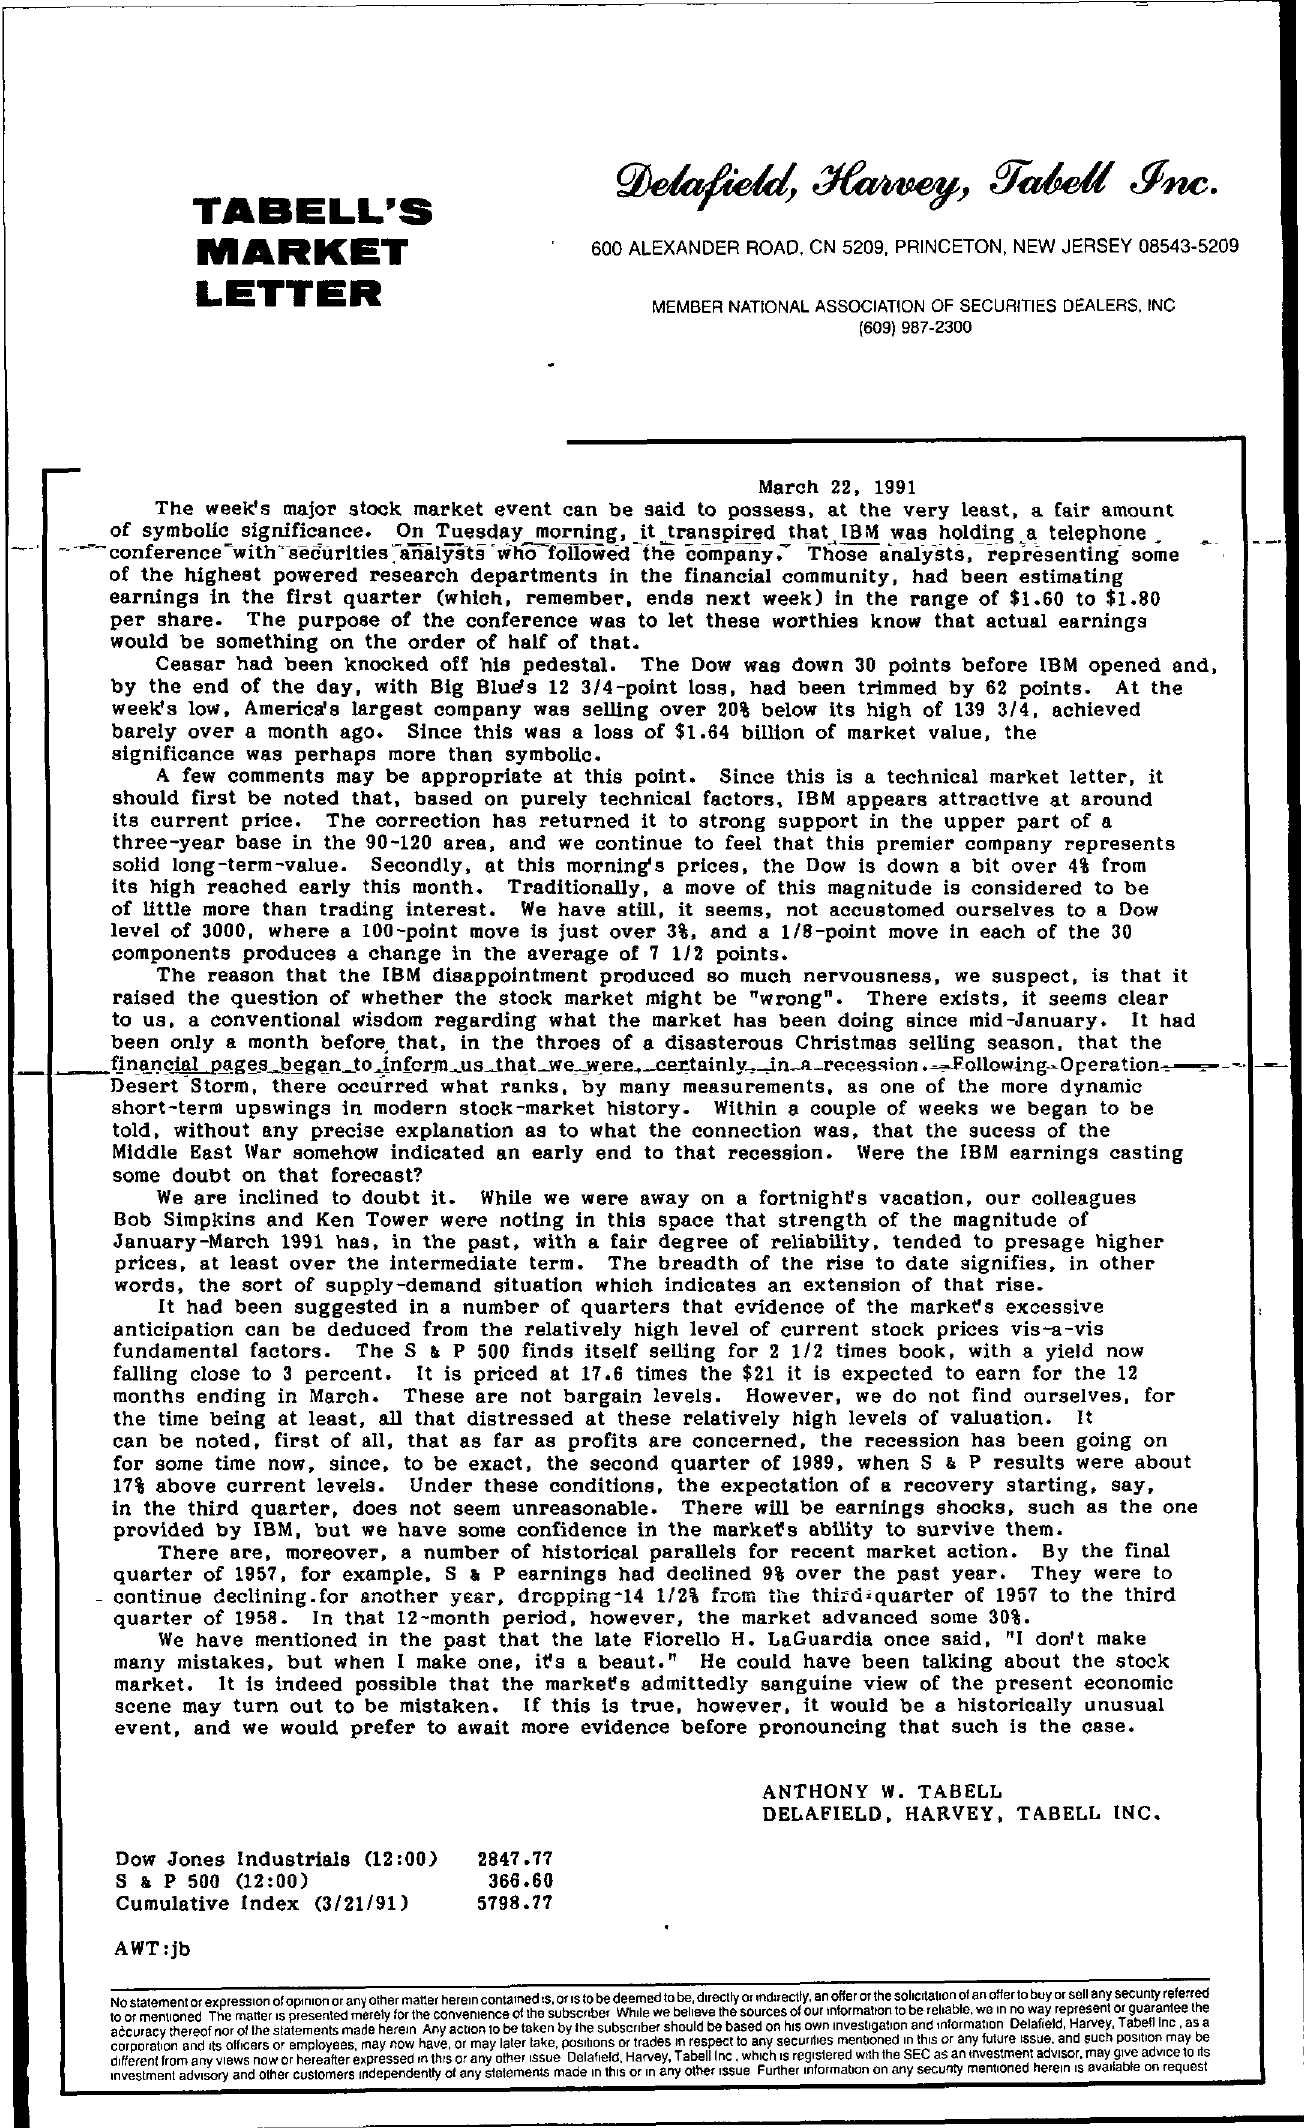 Tabell's Market Letter - March 22, 1991